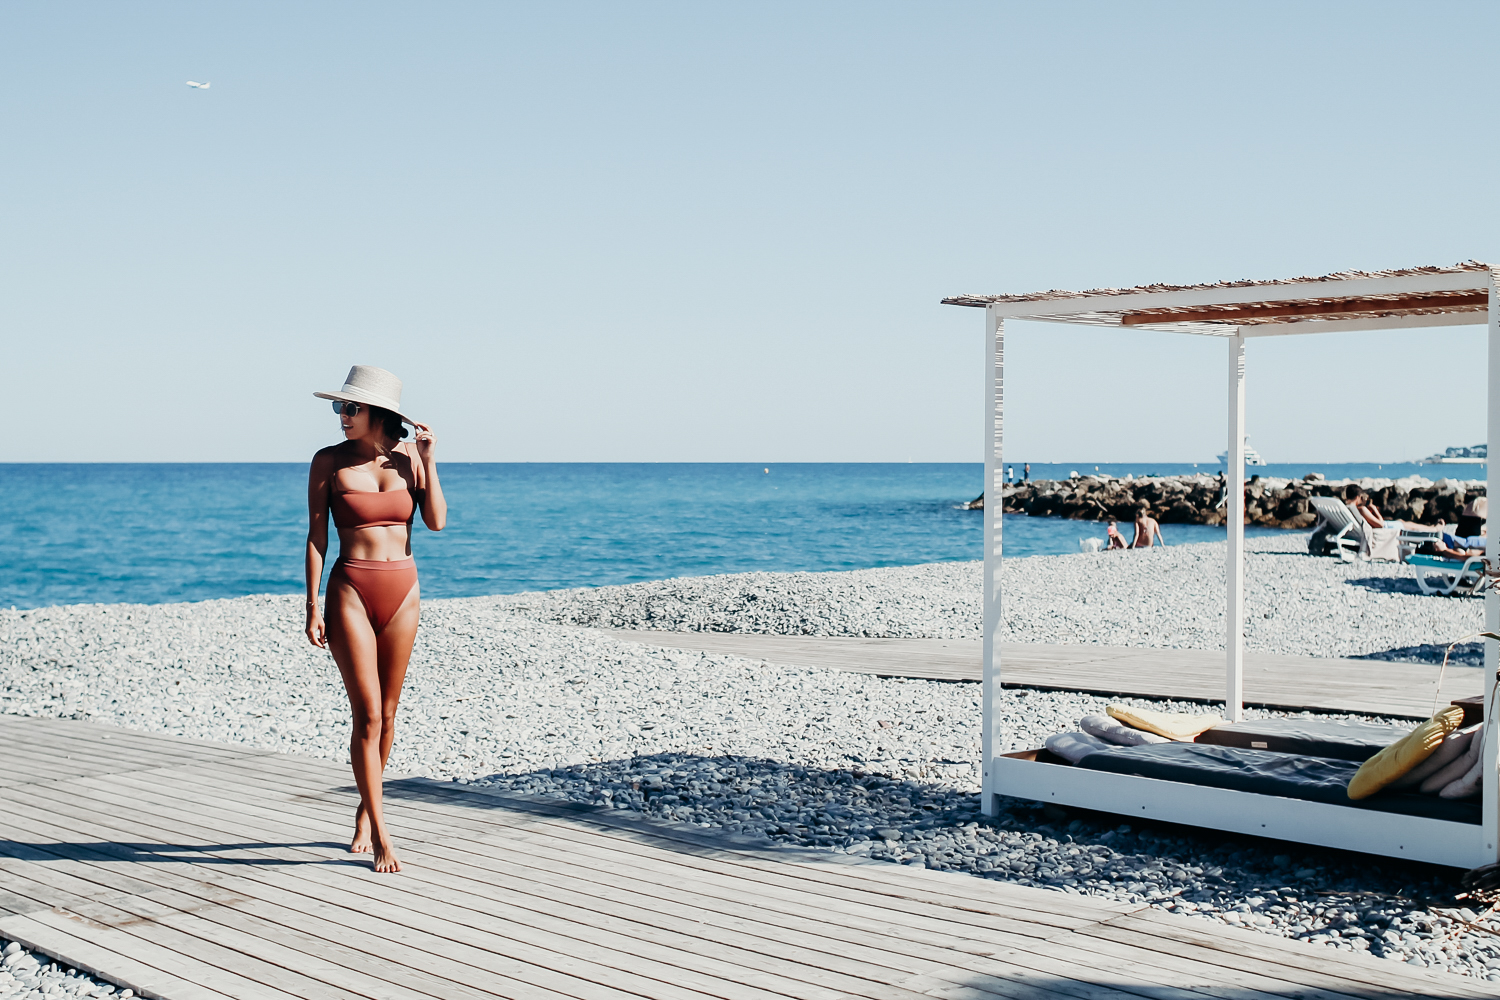 Antibes - South of France, Everyday Pursuits wearing L Space Ridin' high bikini